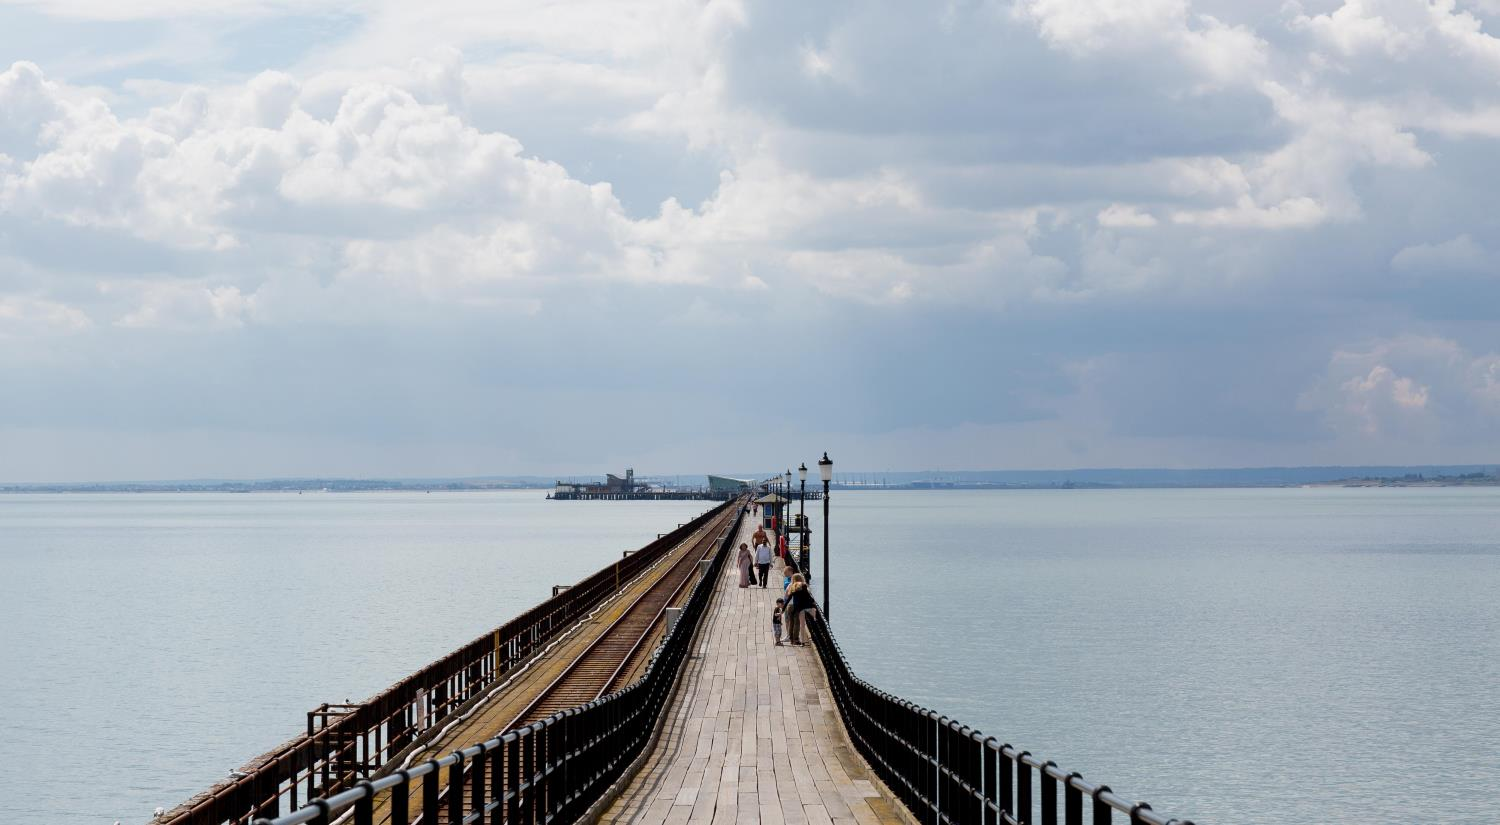 Southend pier view over the sea